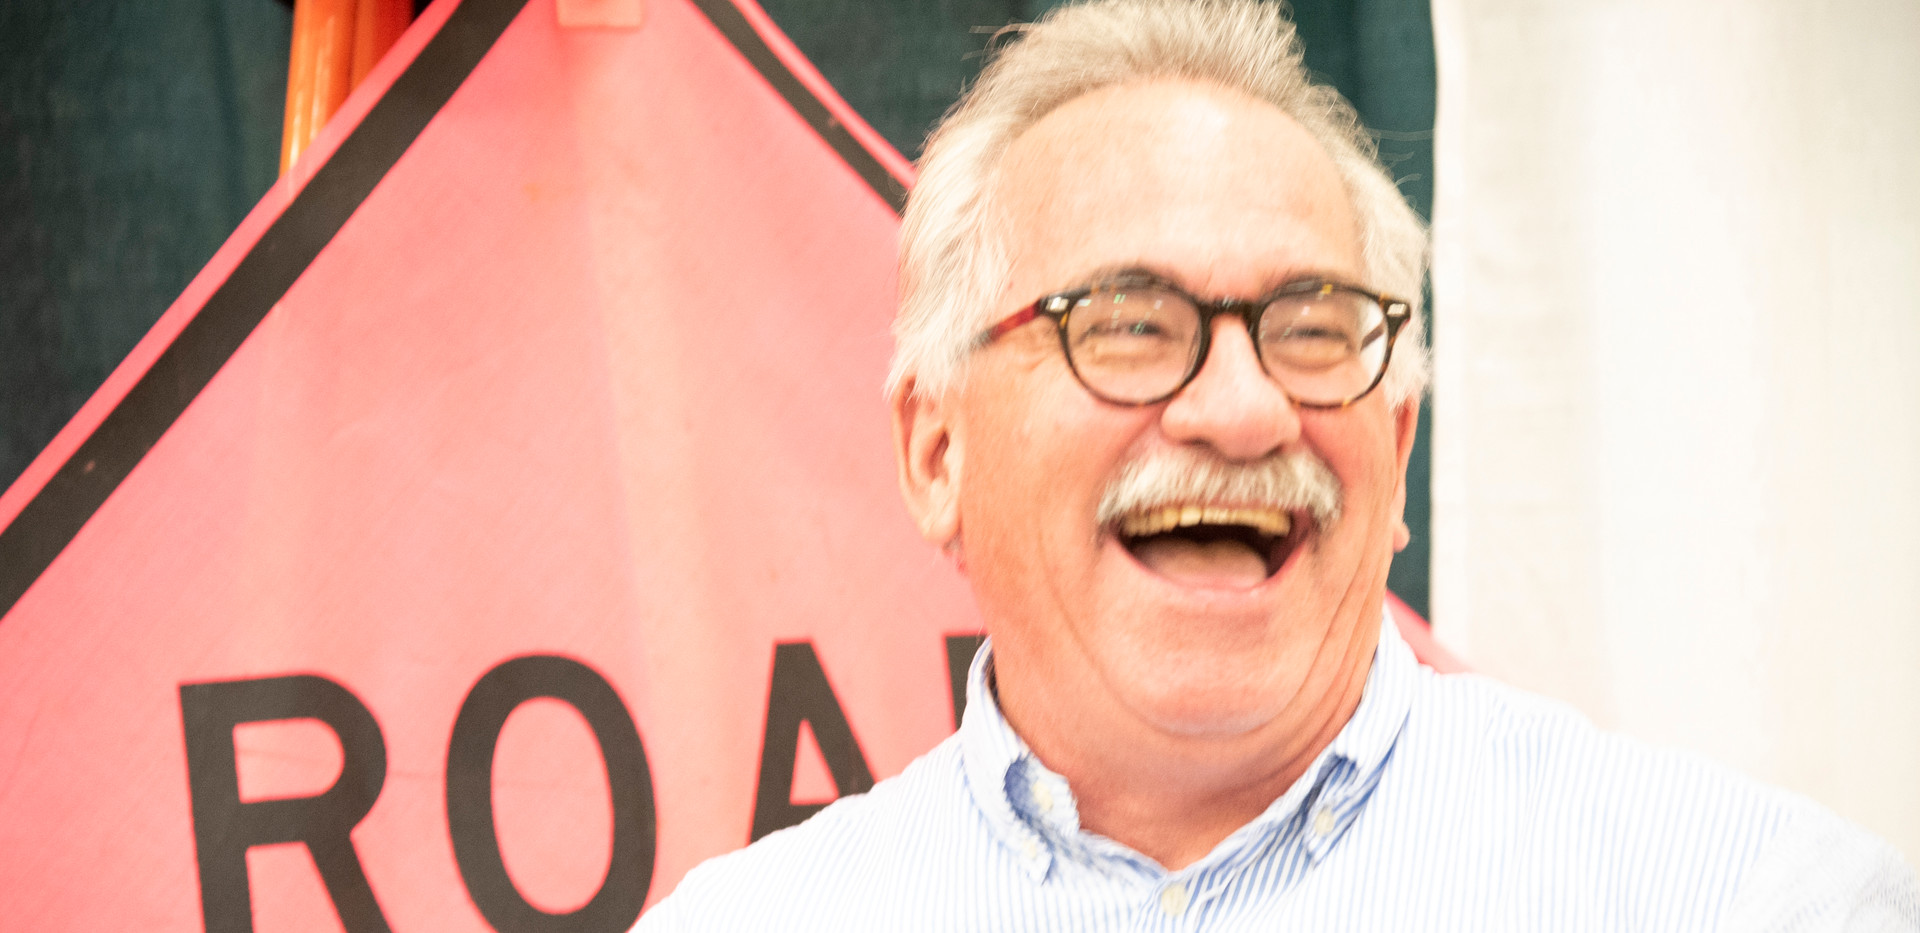 man laughing tradeshow.jpg